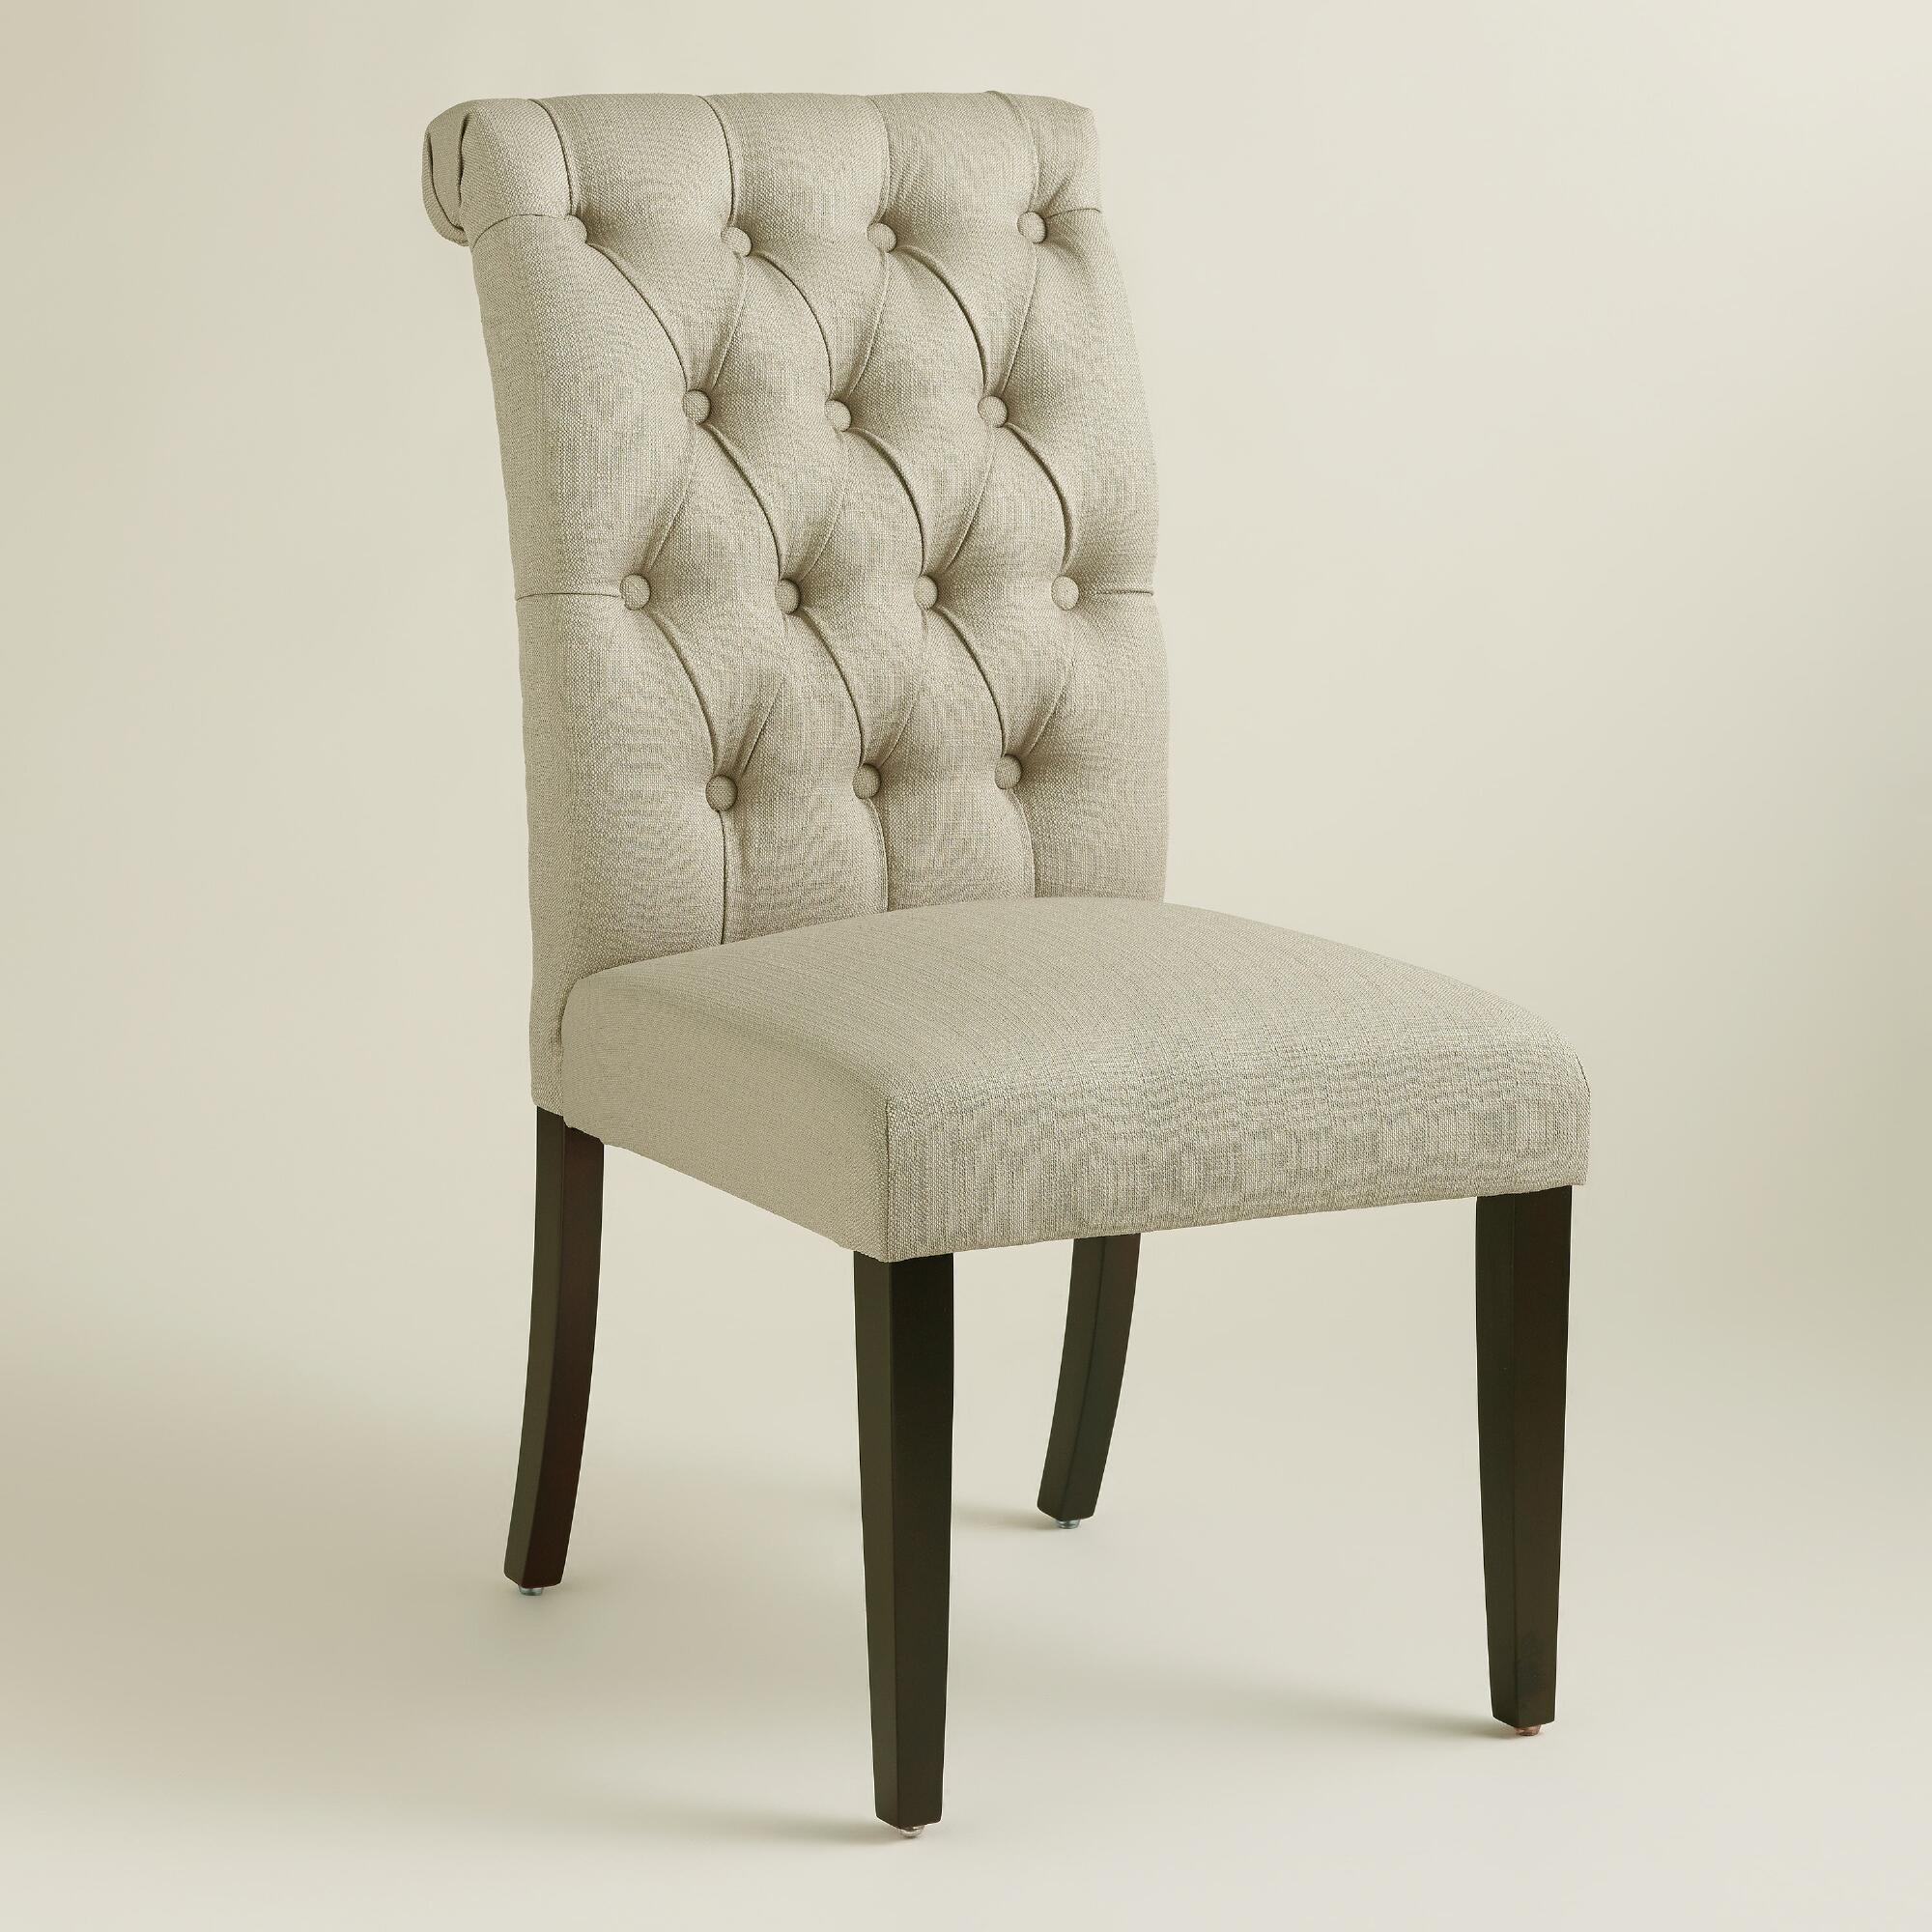 dining room overstock chairs tufted dining chair parson inexpensive dining room sets tufted dining chair tufted wingback dining chair